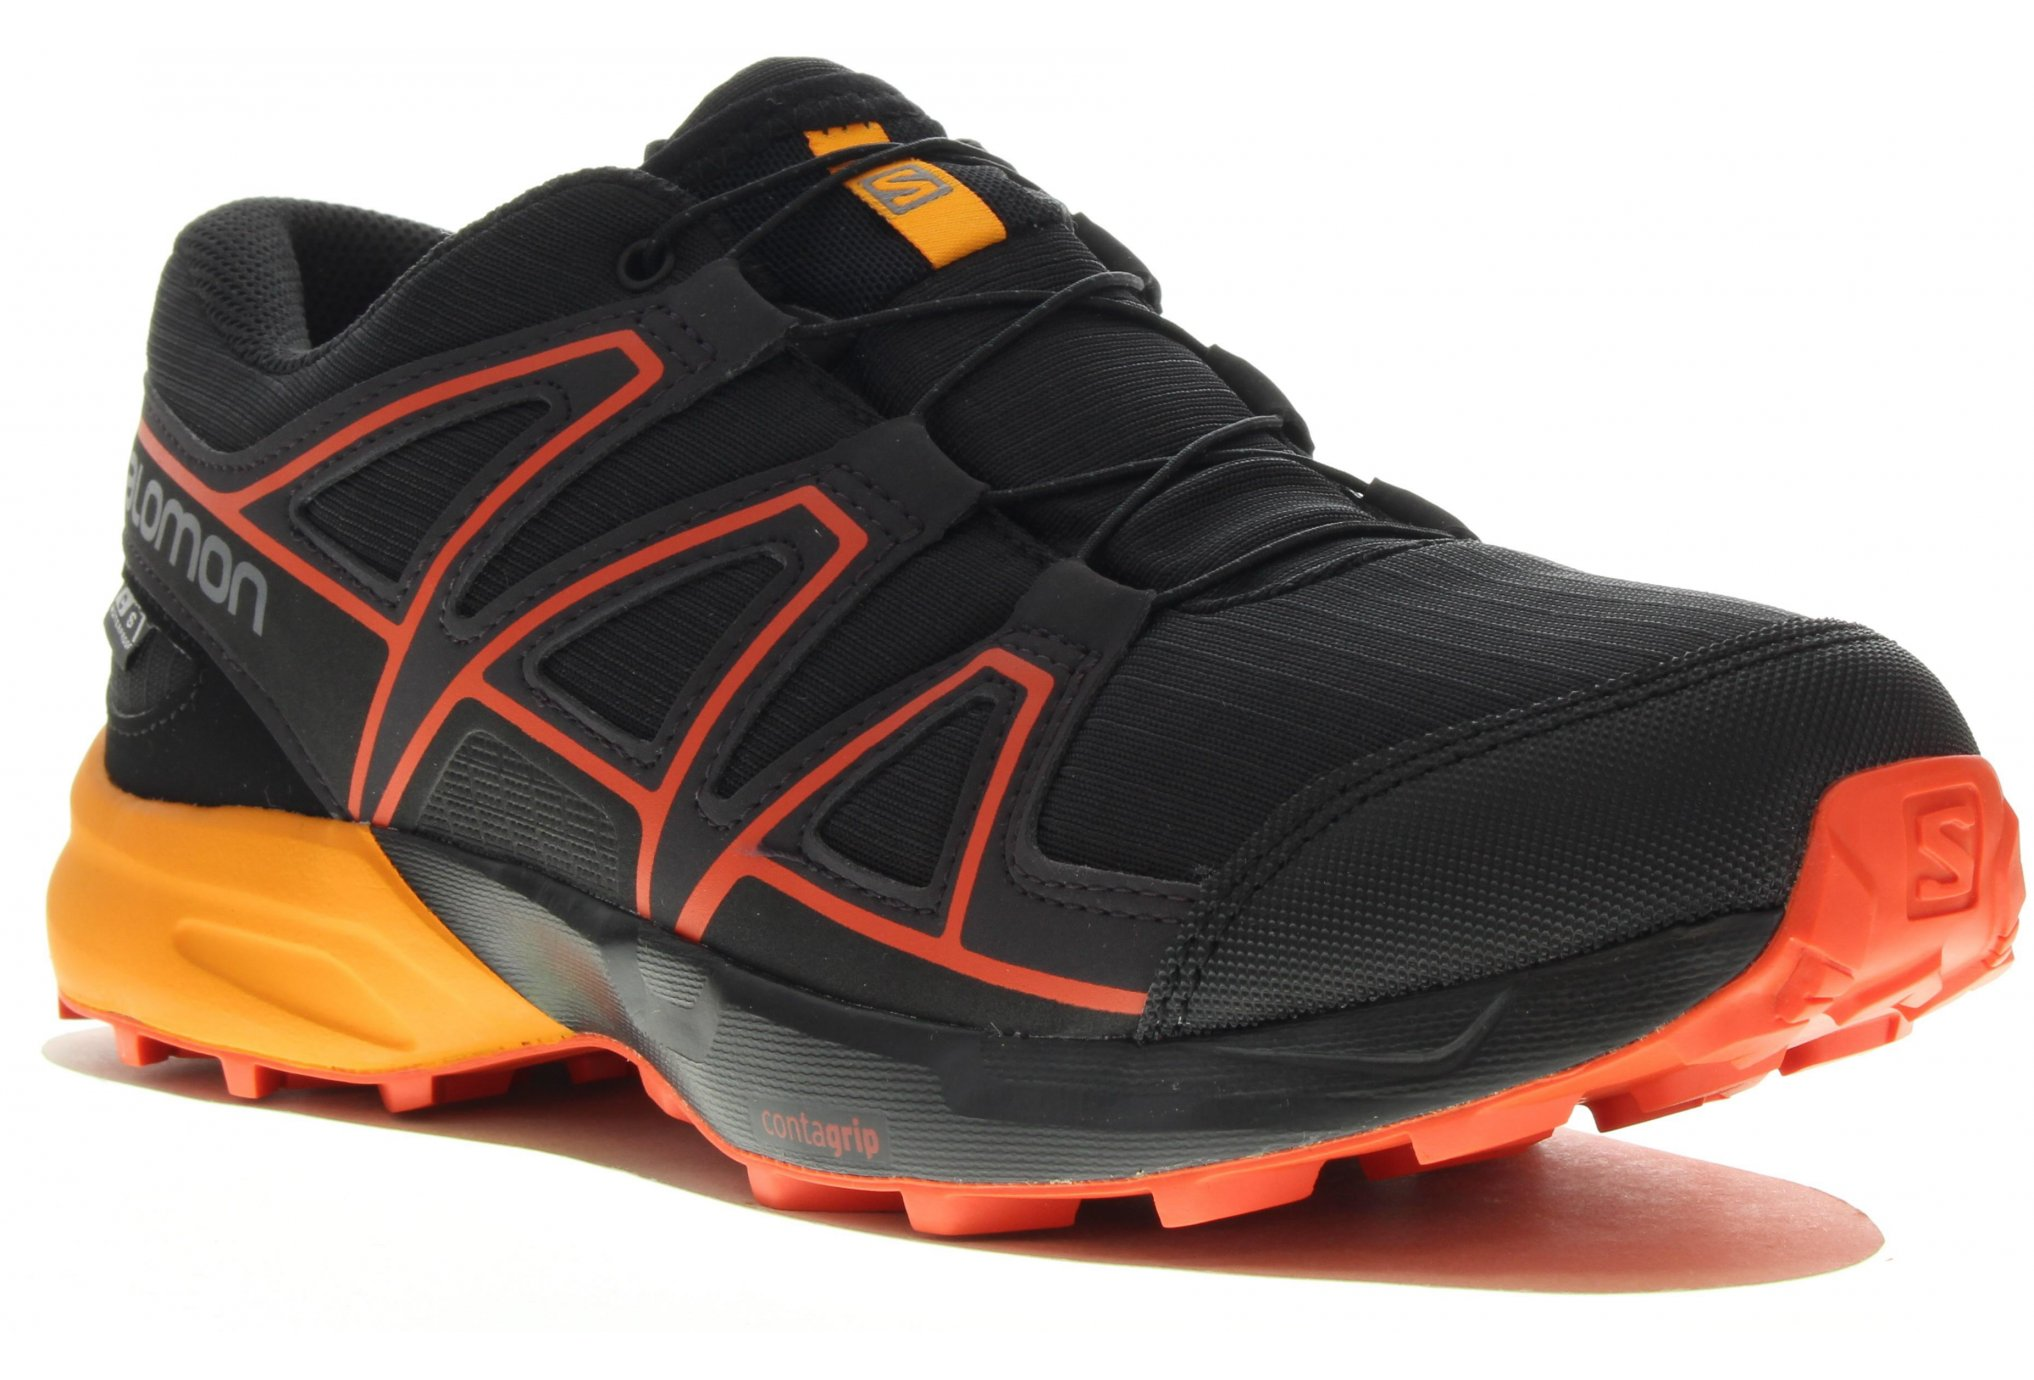 Speedcross Climashield Waterproof Trail Session Salomon J qttEgY